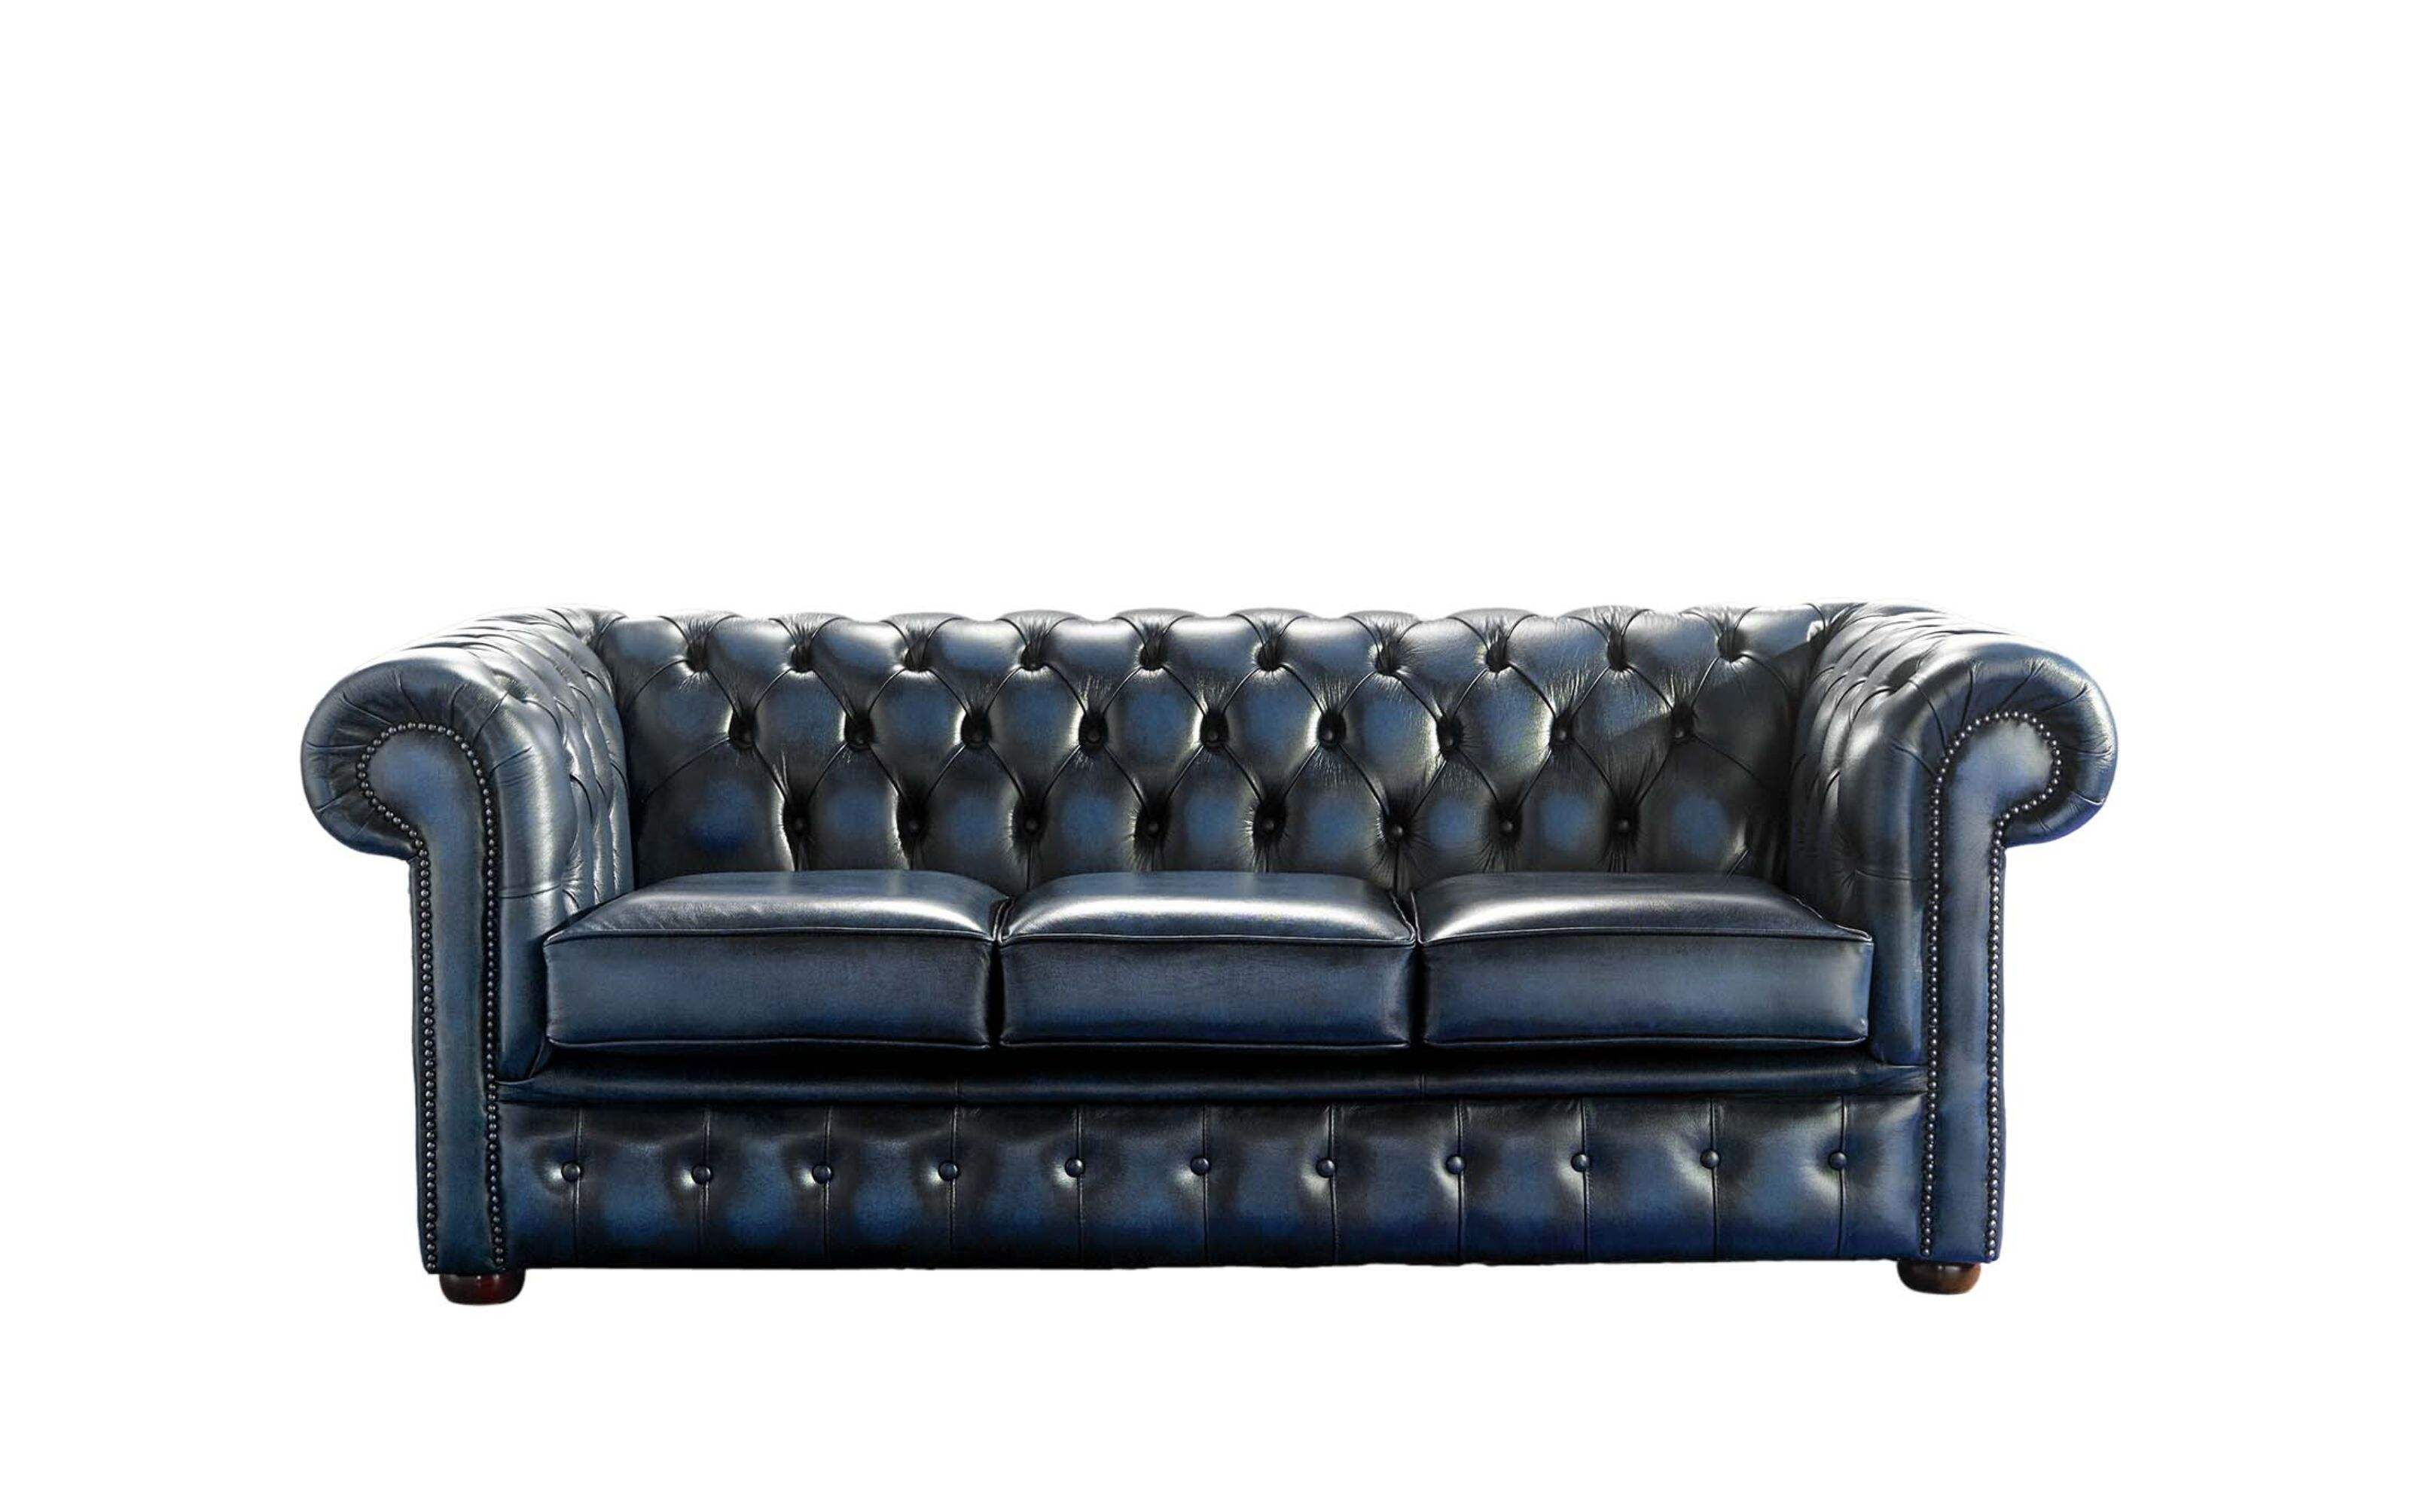 Chesterfield 3 Seater Blue Leather Antique Sofa | Sofa Offers